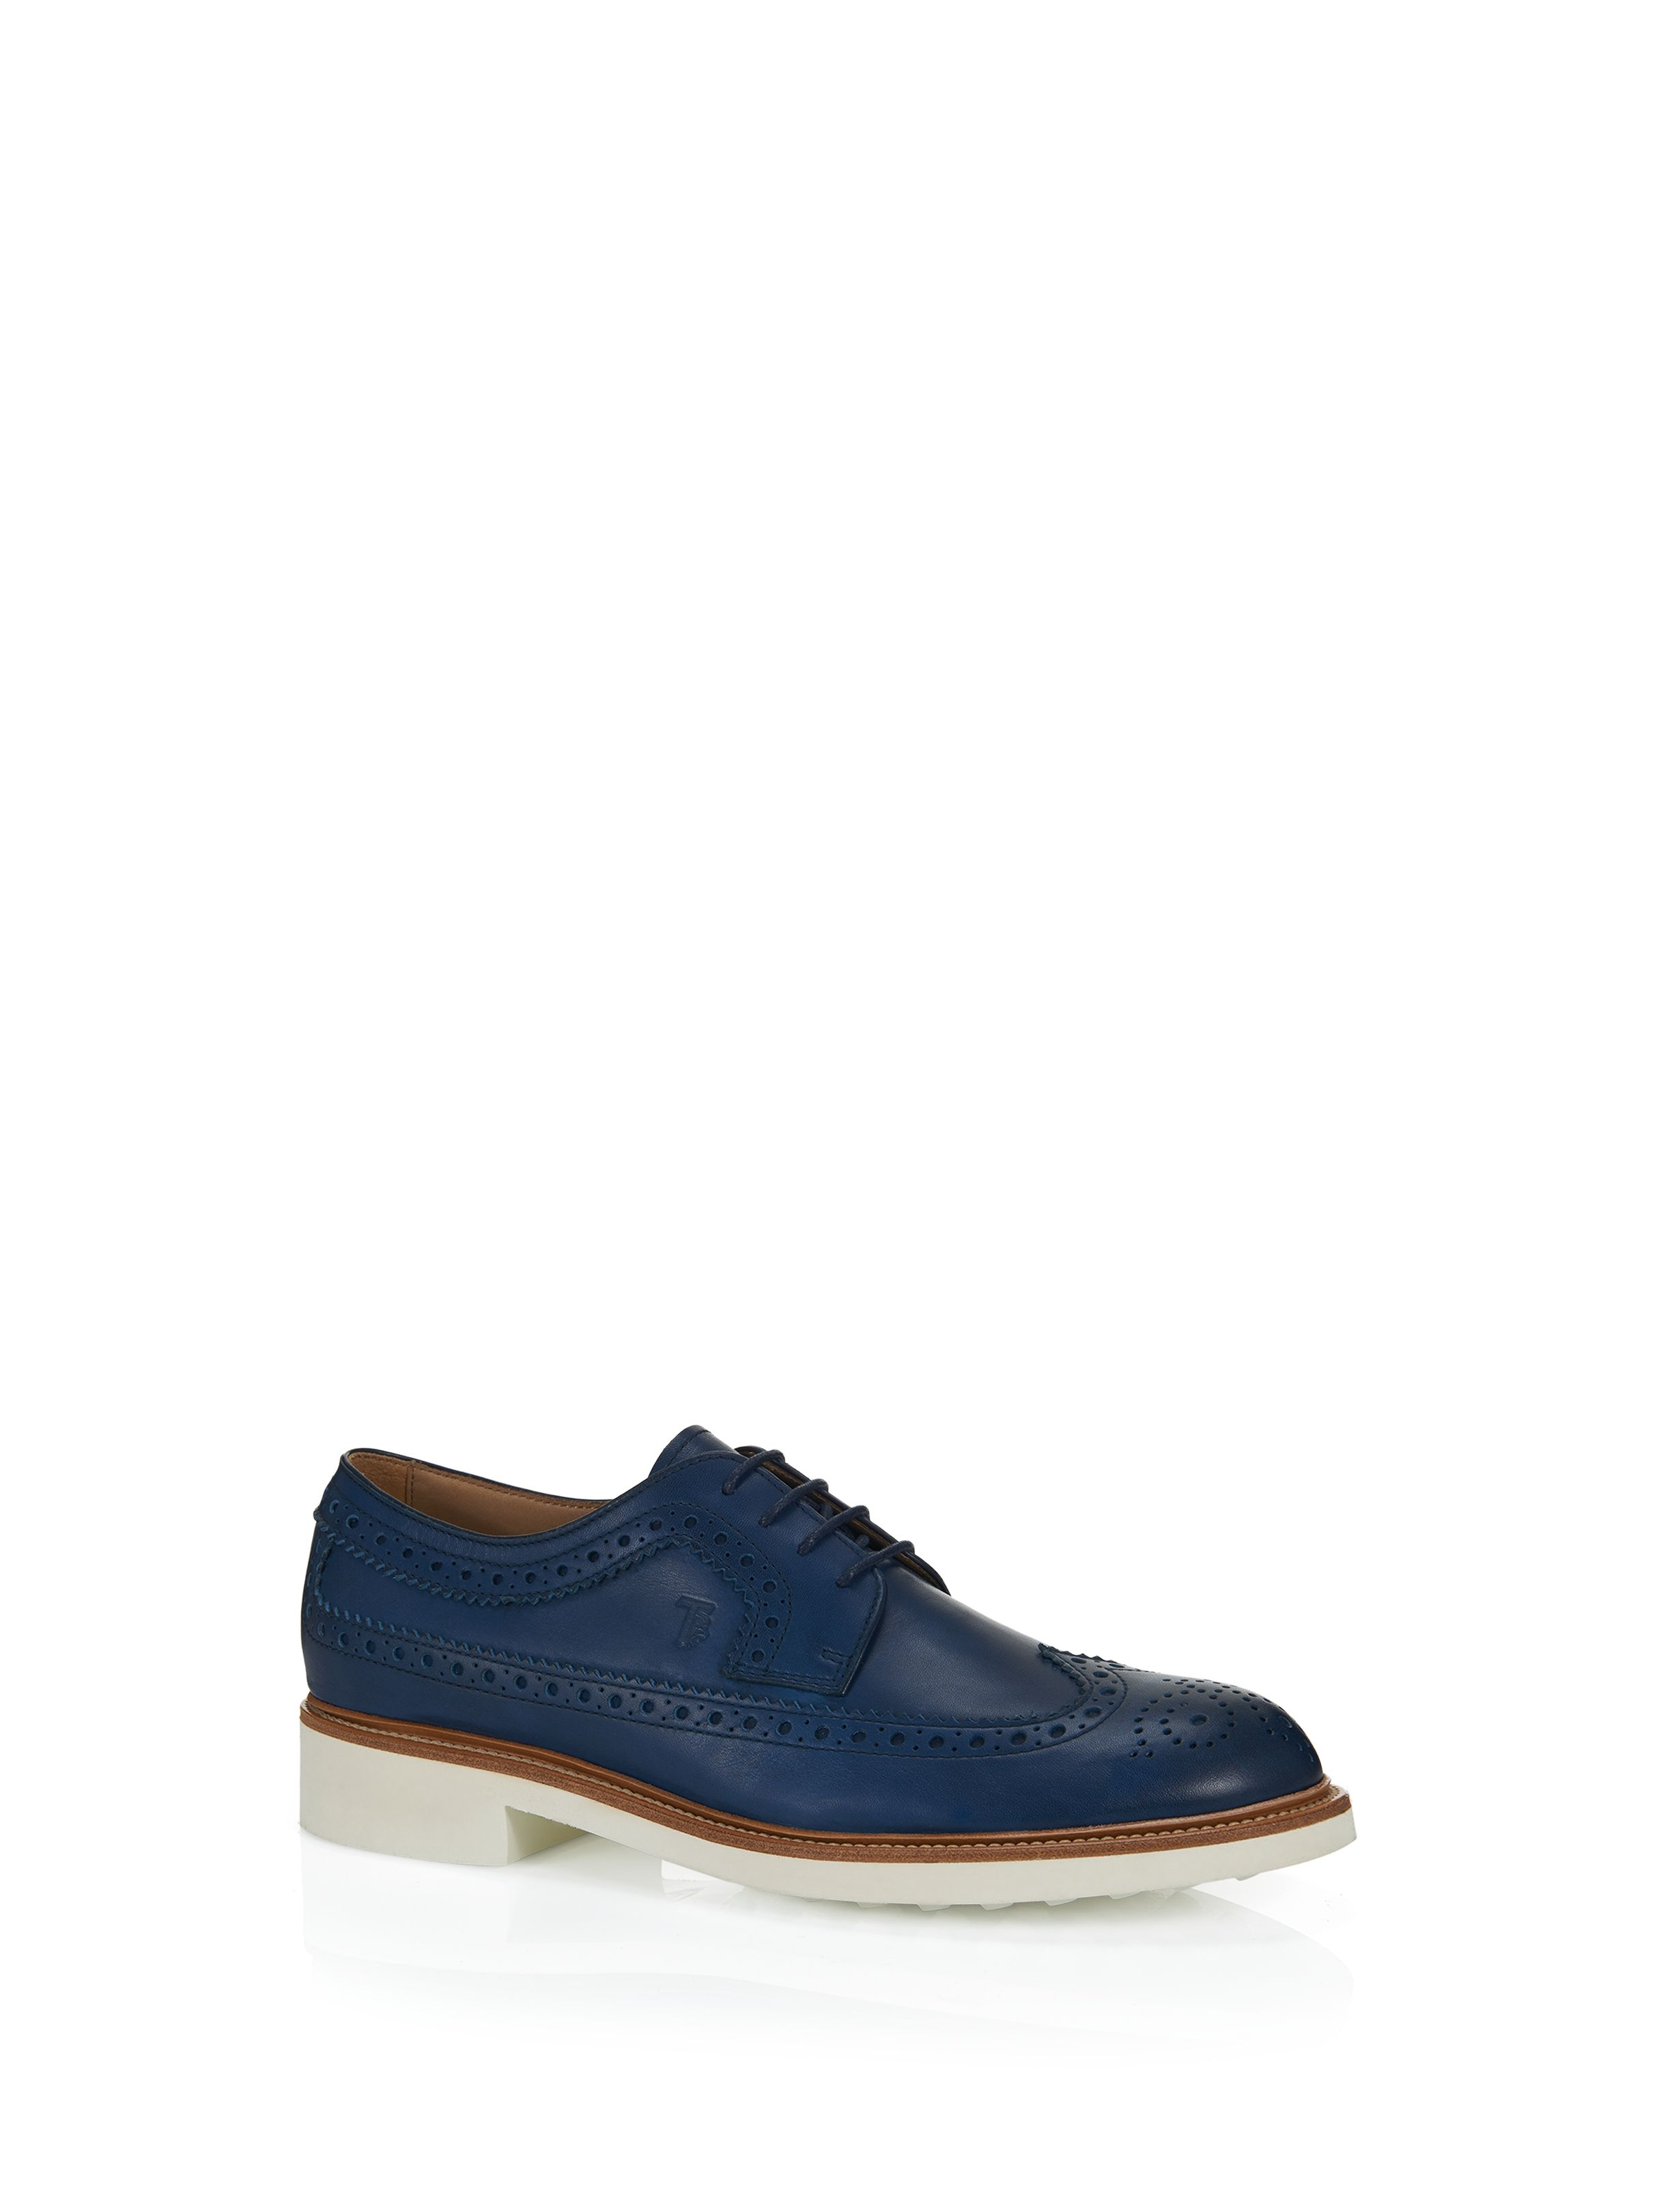 Tod's - Stringata In Pelle - XXM0TC00C10D90U803 - Soft leather lace-up shoes tanned according to artisan methods which preserve its natural patina, featuring traditional English-style wingtip perforations, exposed stitching on the leather welt and ultralight rubber outsole with embossed rubber pebble detailing. - Leather upperExposed stitching on leather weltEnglish-style wingtip perforationsEVA bottom with embossed rubber pebblesTod's stamped monogramHighly selected calf lea